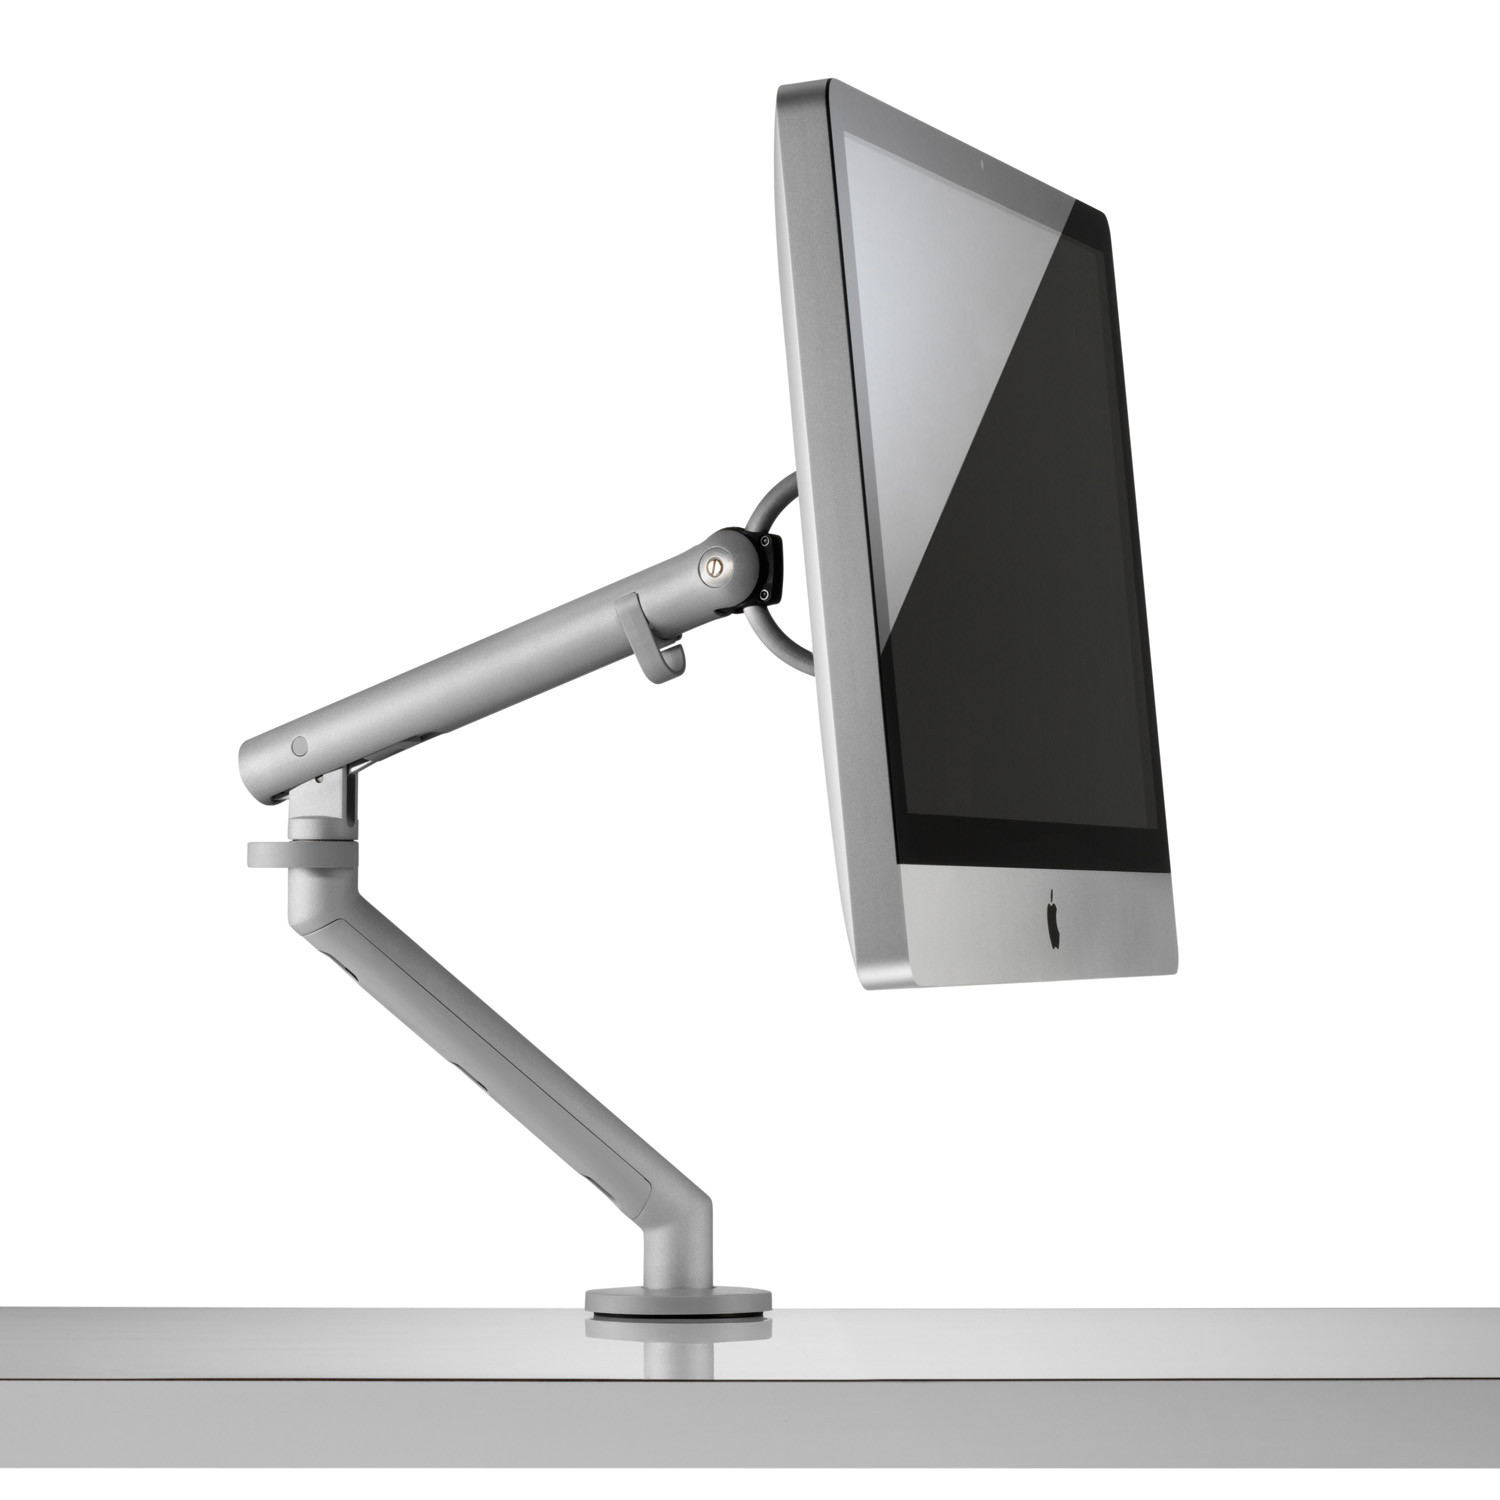 Flo Monitor Arms